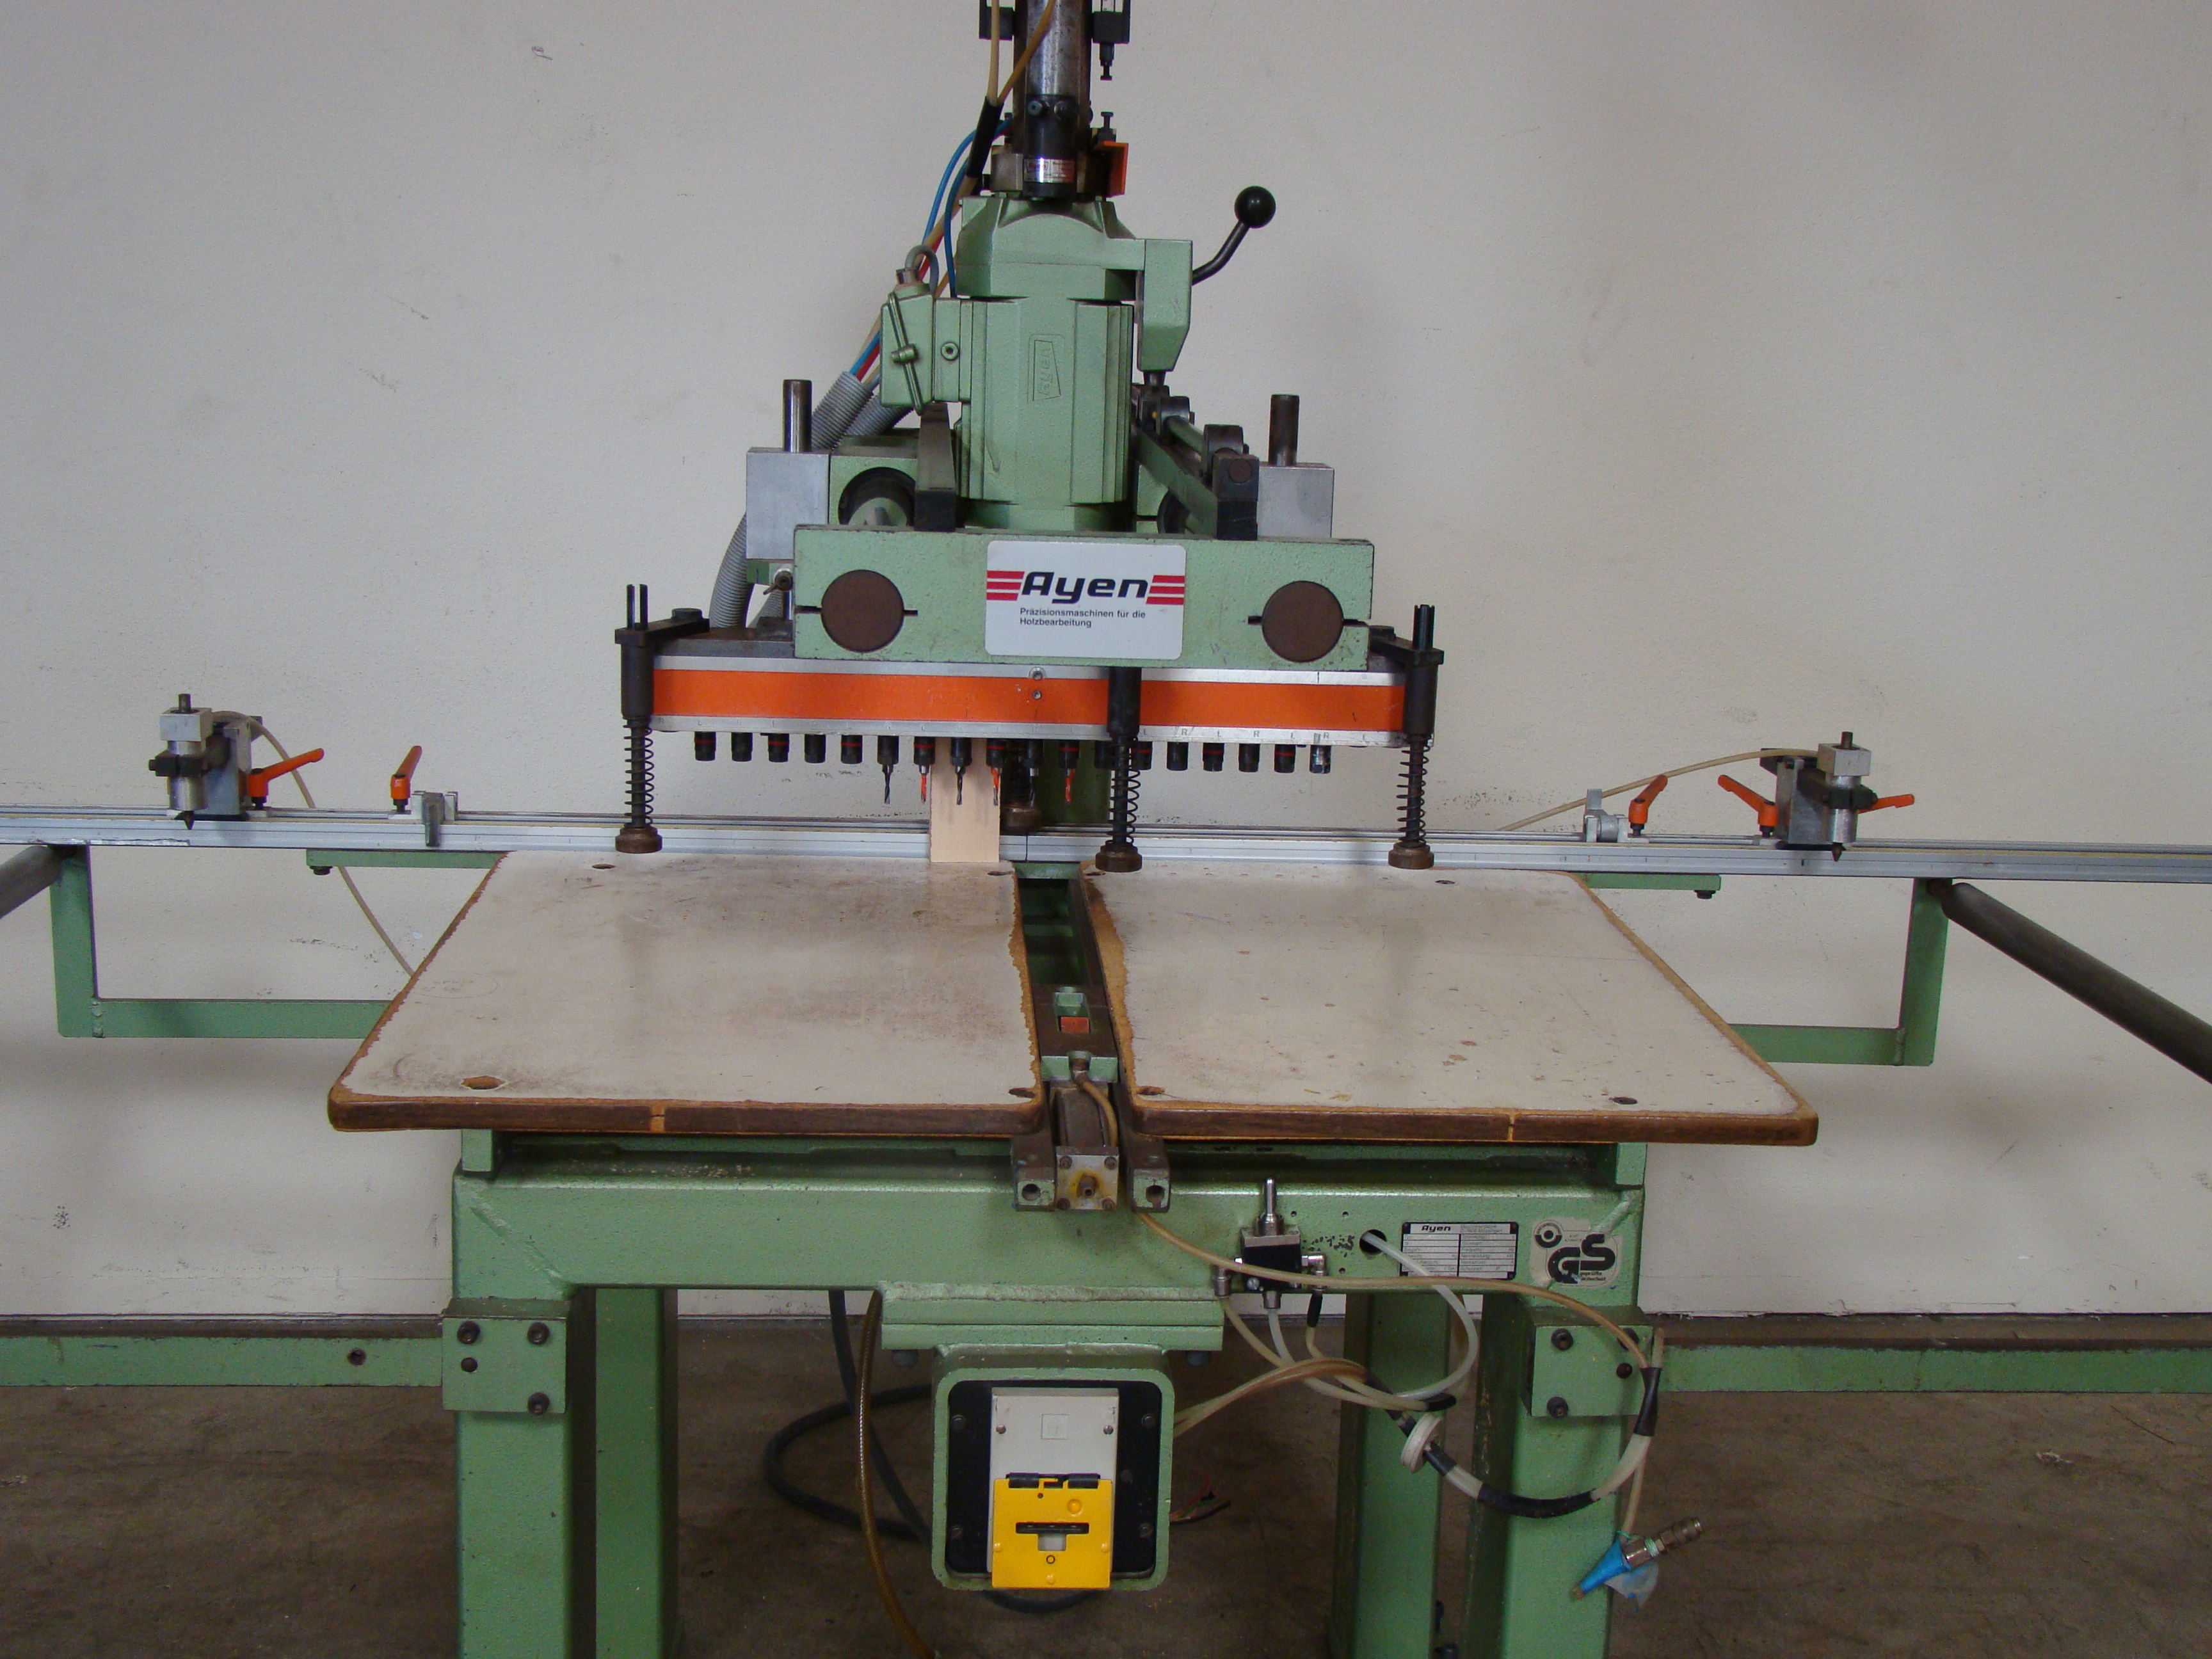 Ayen 21 Spindle Pneumatic Line Boring Machine with foot pedal, 230/460 Volt 3PH - Image 7 of 9